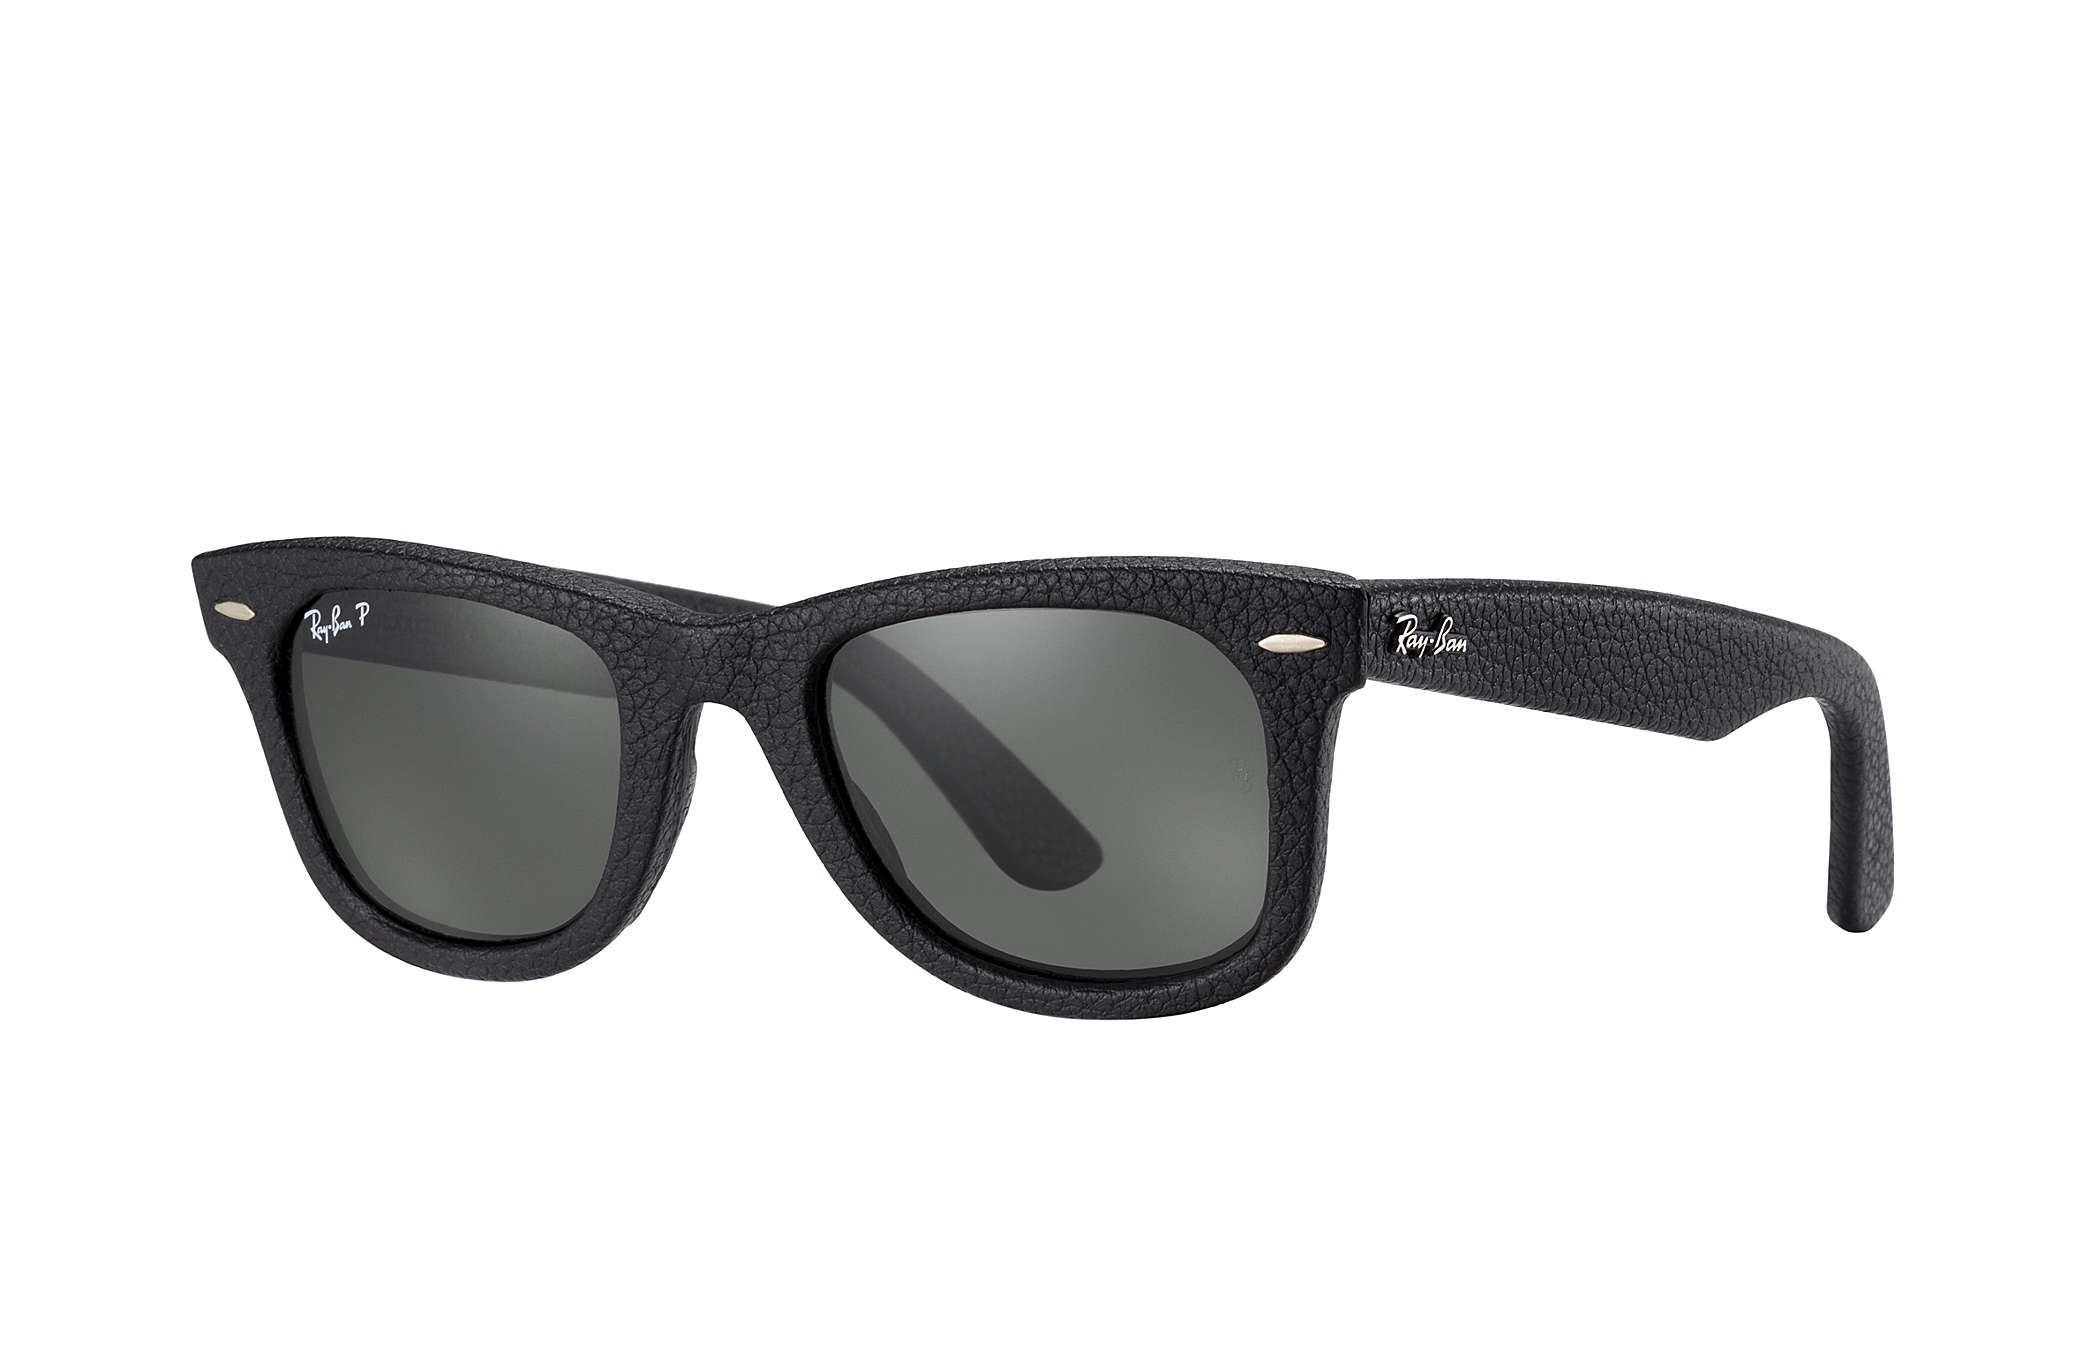 ray ban wayfarer sunglasses vision express  ray ban 0rb2140qm wayfarer leather black sun